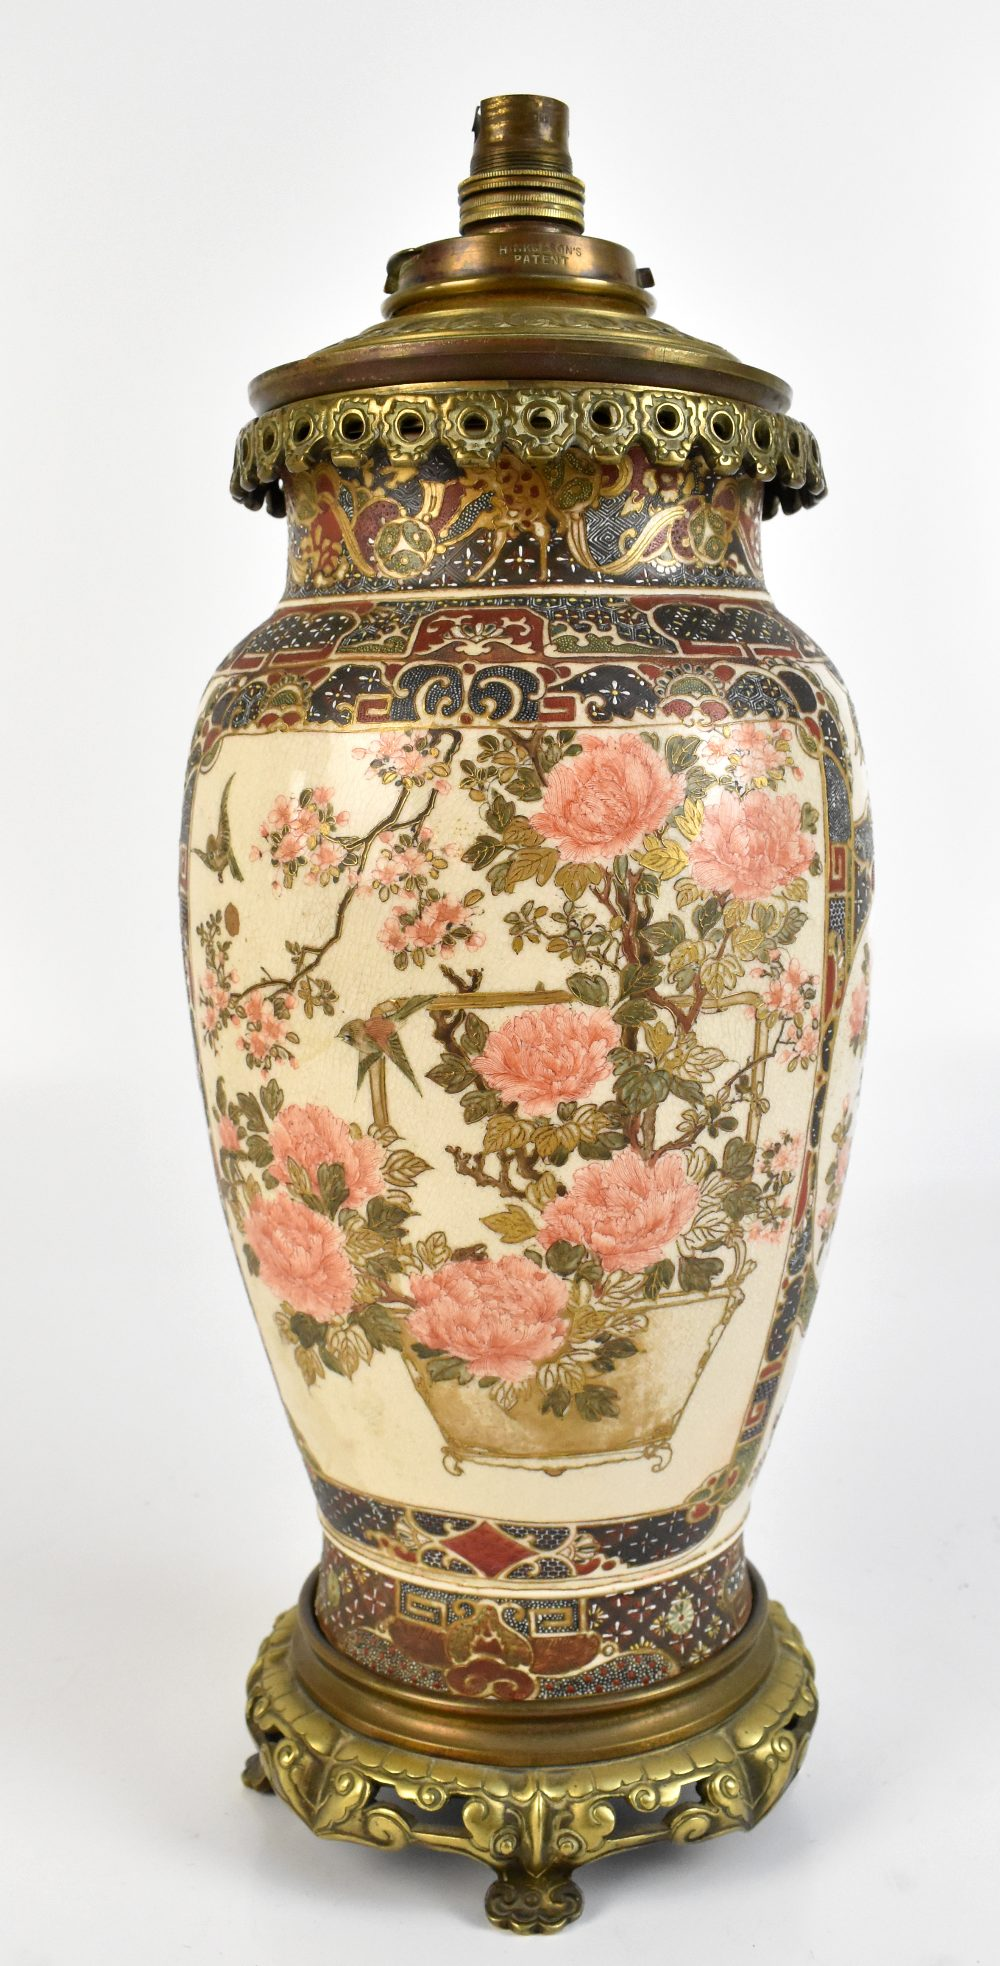 An early 20th century Japanese Satsuma oil lamp with brass mount, painted with birds and flowers,